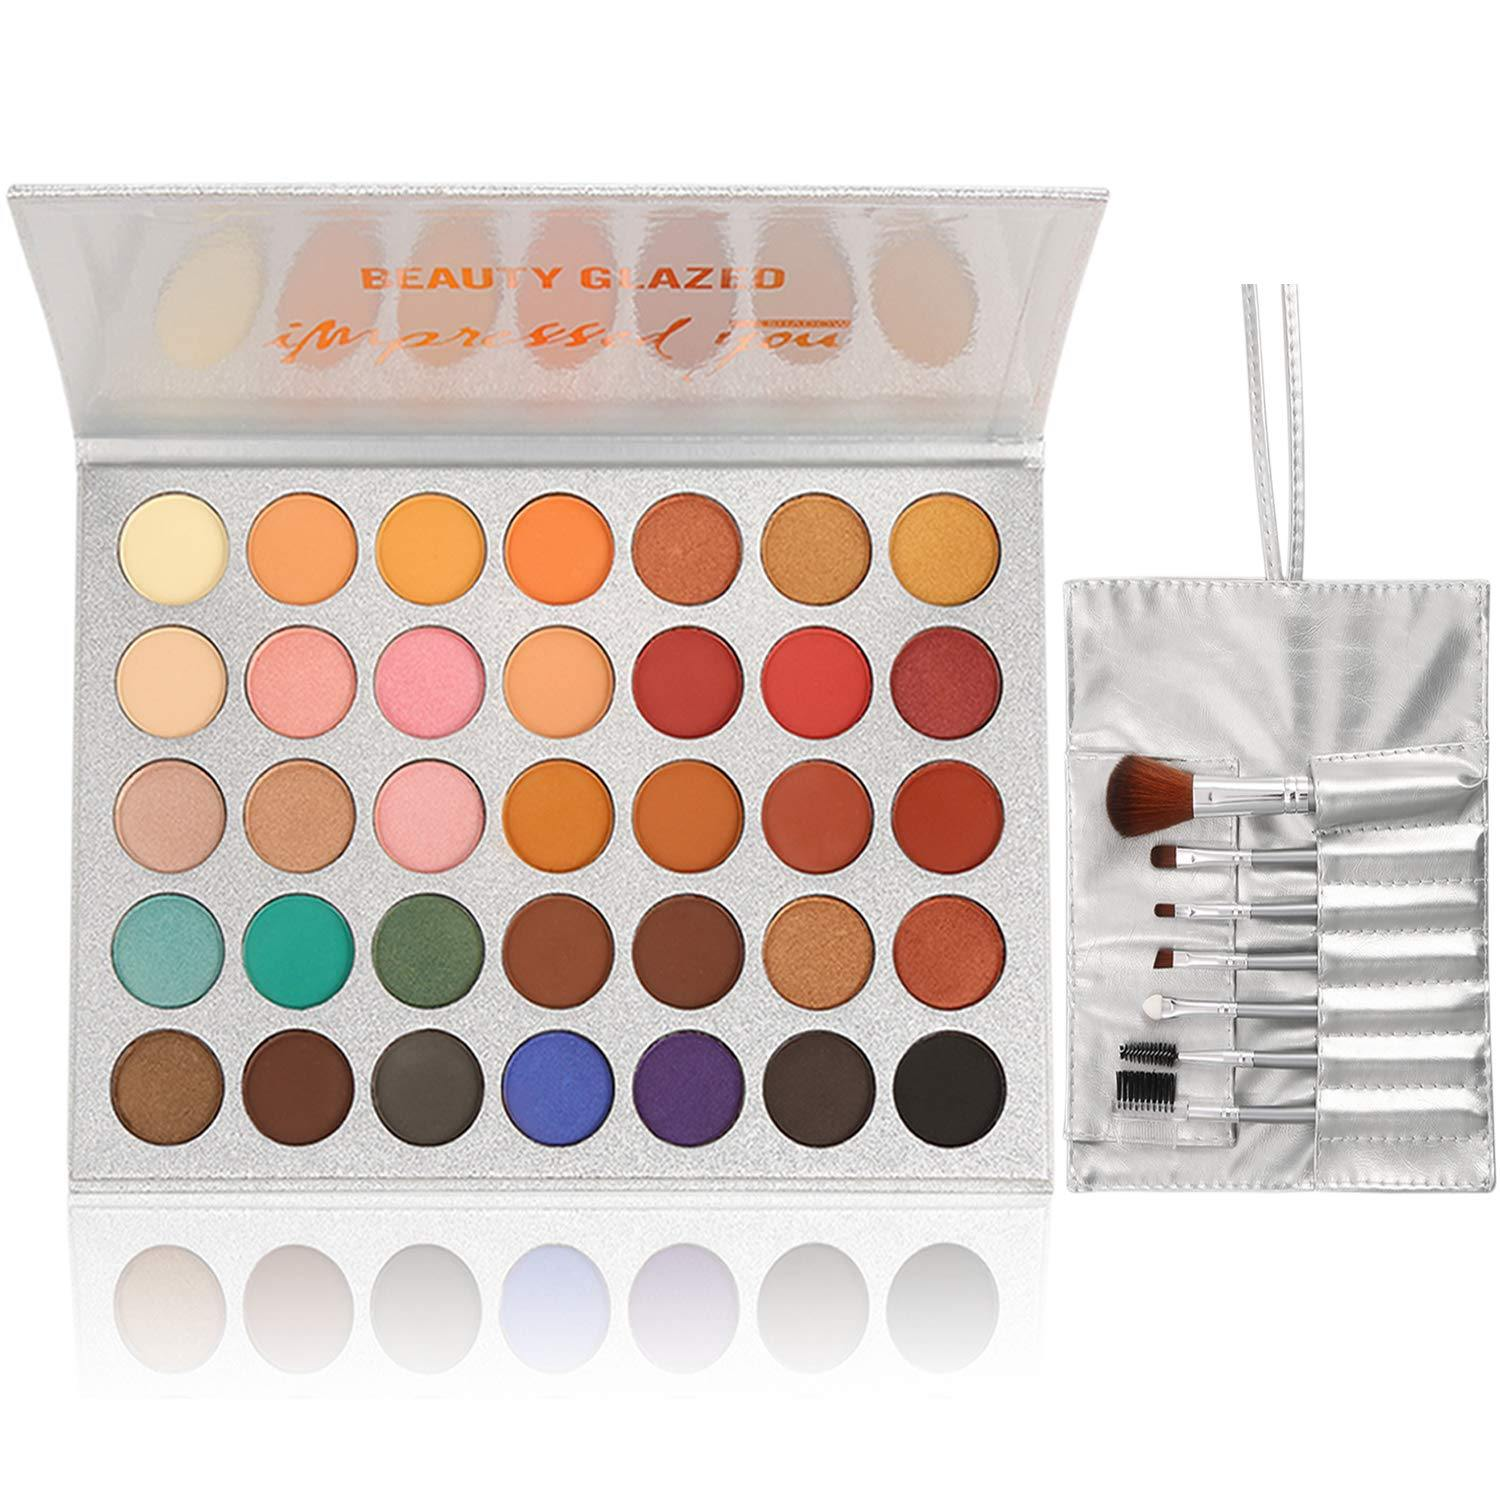 Beauty Glazed Eyeshadow Palette Professional Cosmetic Set (35 Colors + 7 PCS) - Shop Ja'Kai